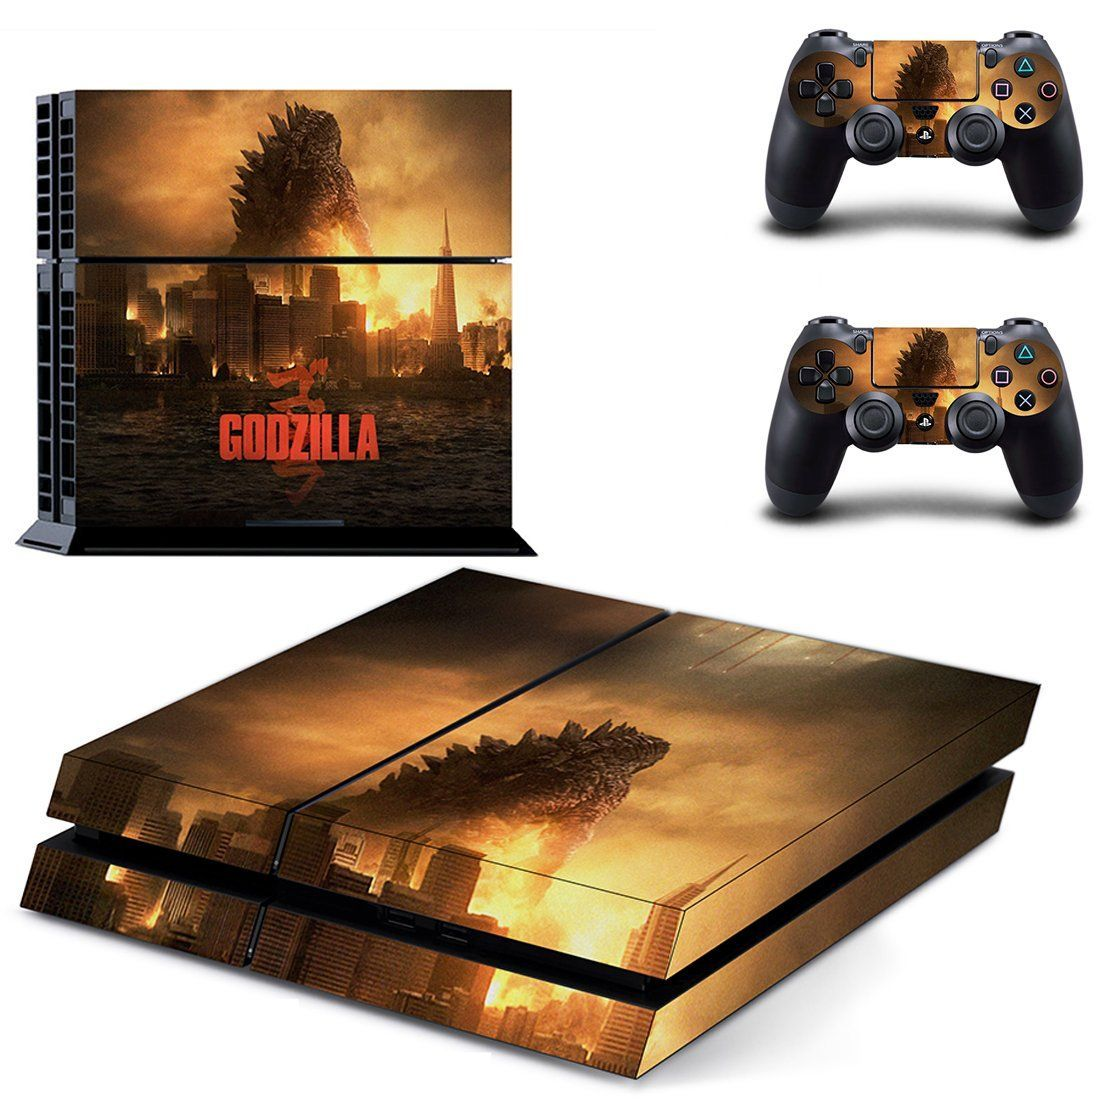 Godzilla ps4 skin for console and controllers Ps4 skins